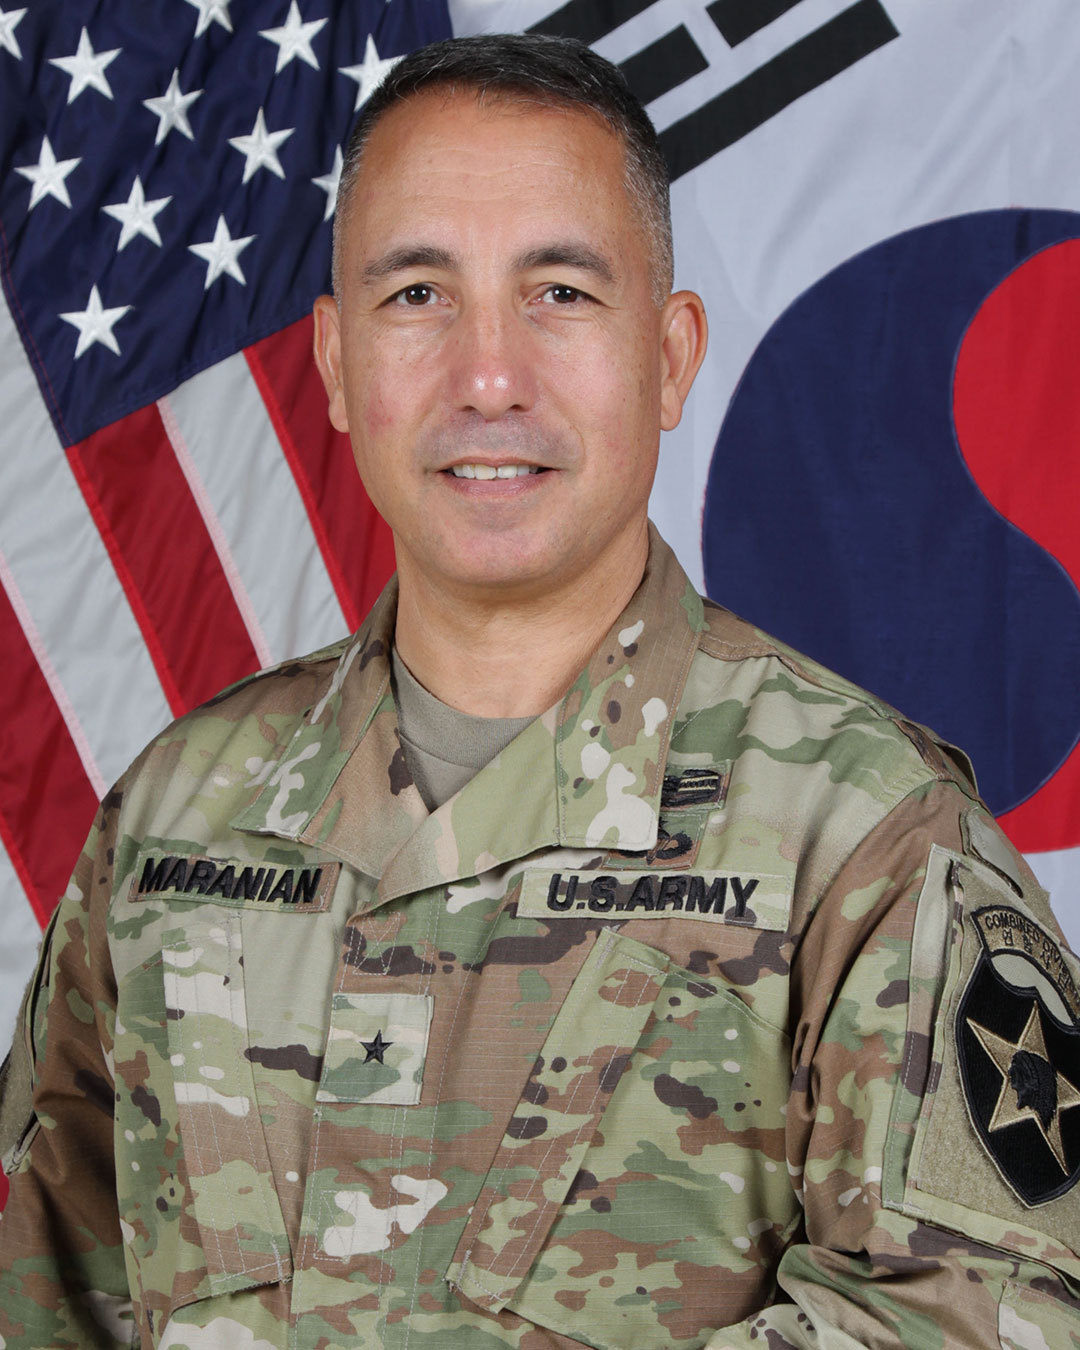 Photo of Brig. Gen. Stephen J. Maranian taken when he was the deputy commanding general for maneuver for the 2nd Infantry Division in Korea.